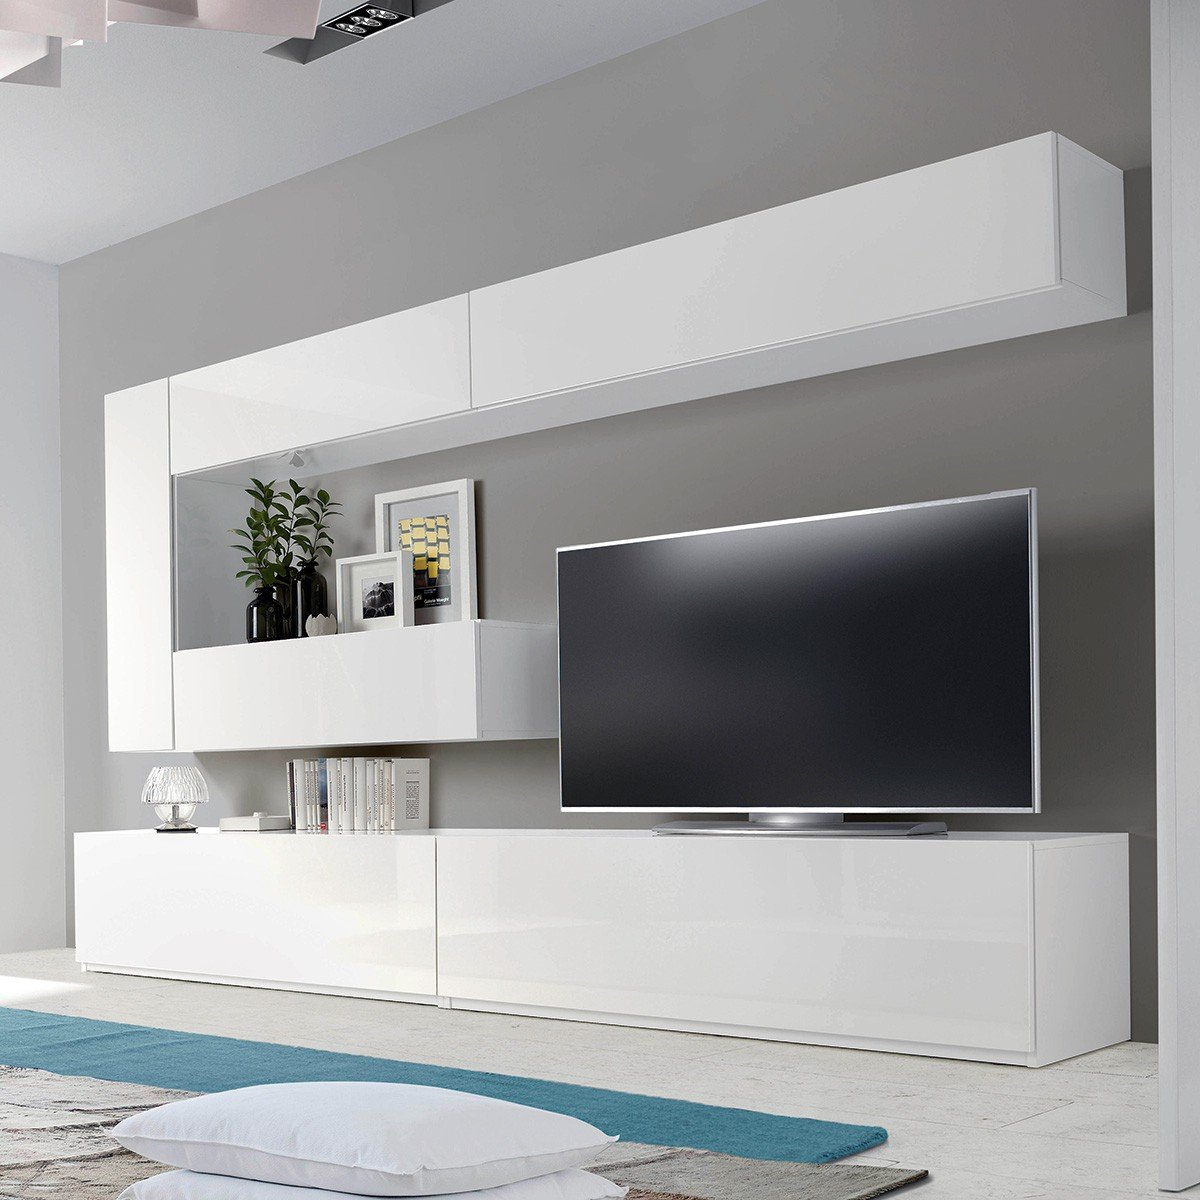 Meuble Tv Mural Design Dublin Atylia Couleur Blanc Amazon Fr  # Meuble Tv Design Mural